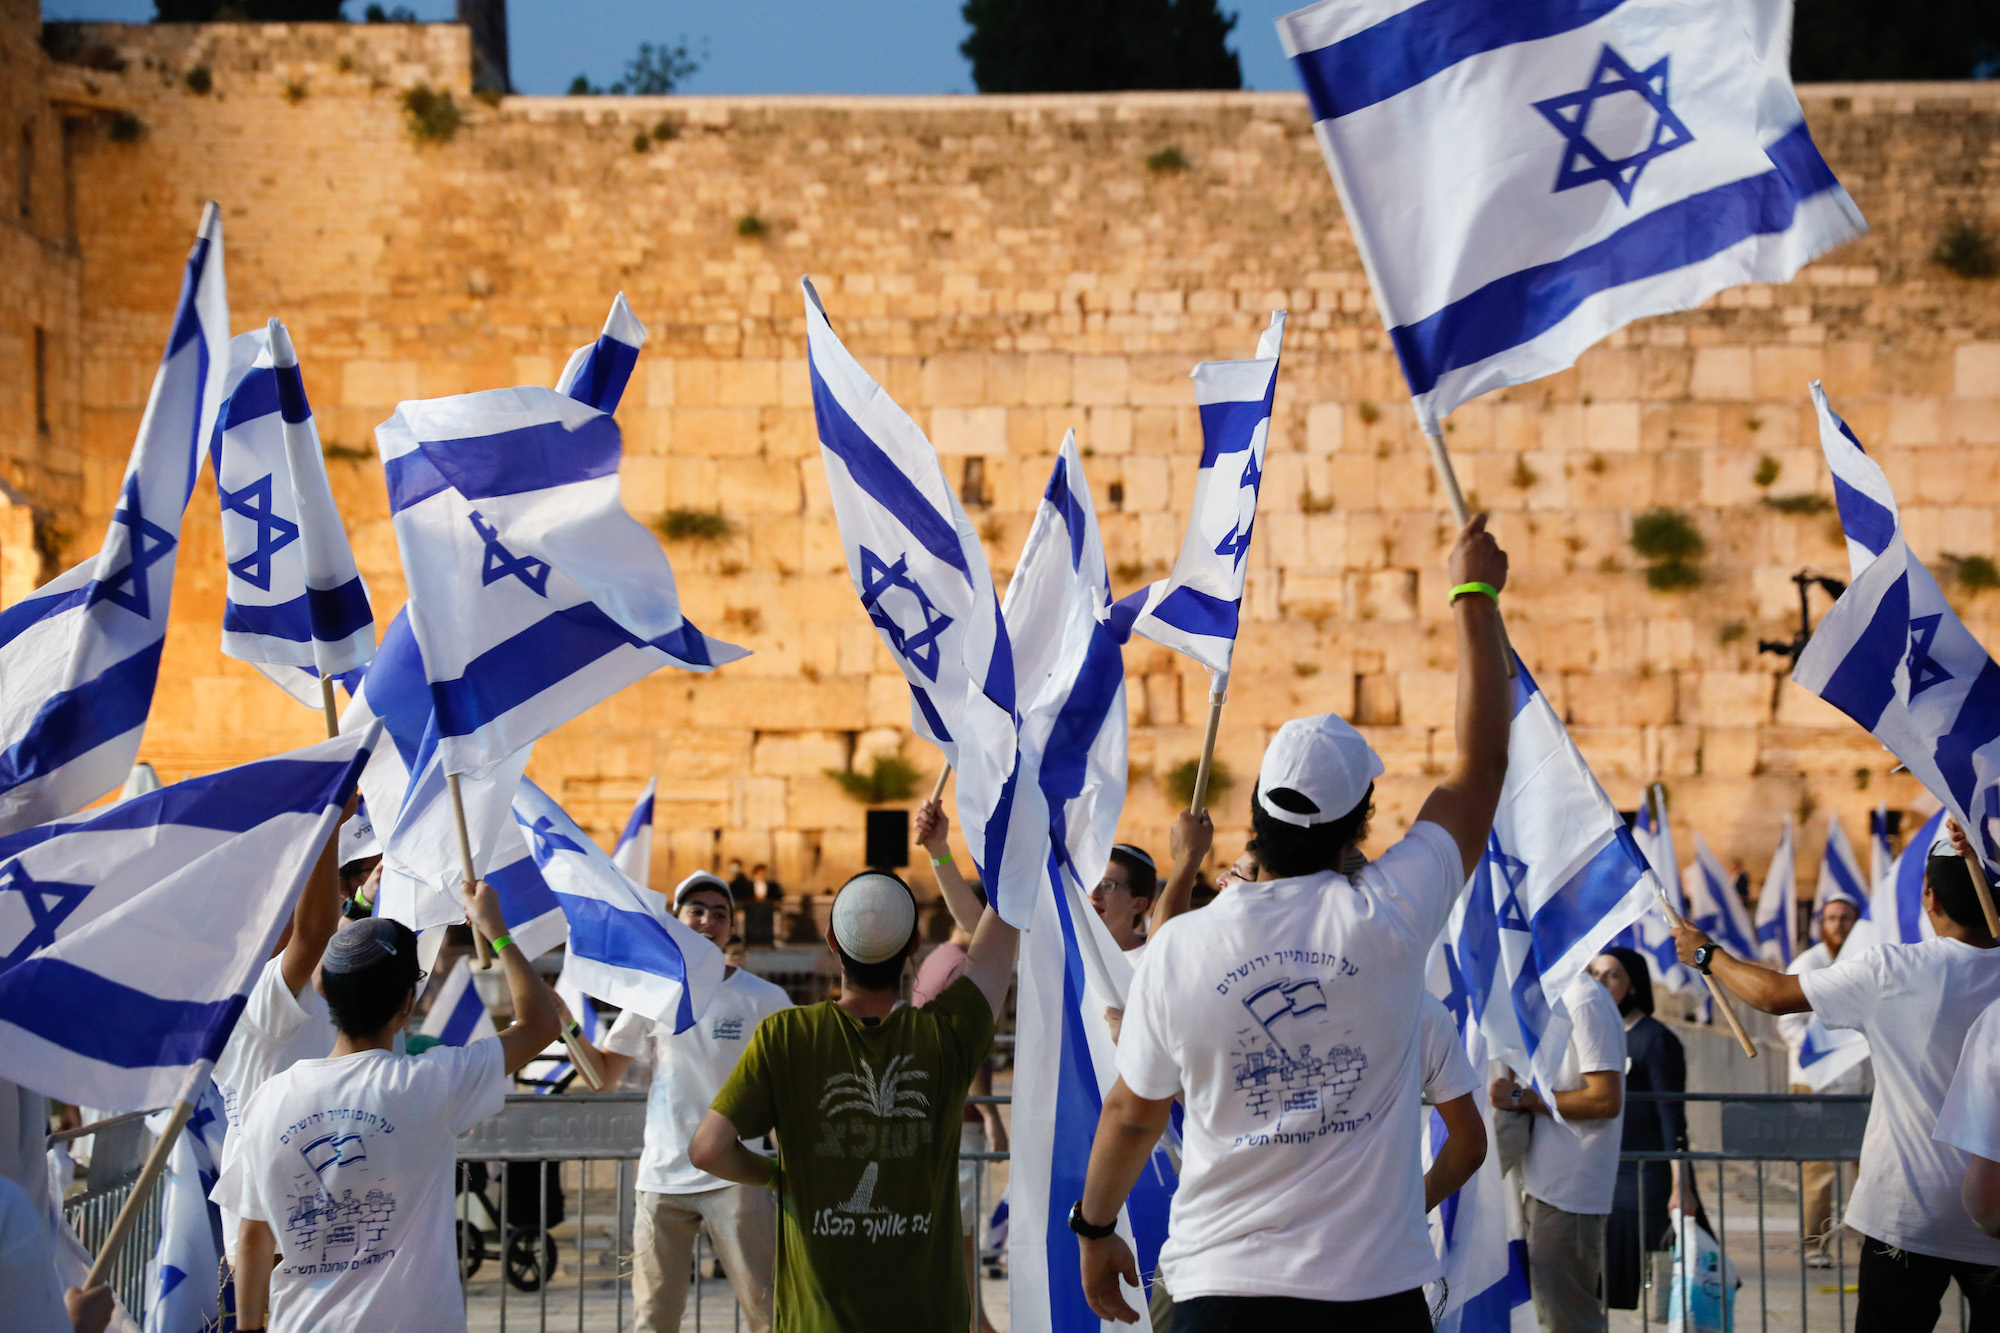 Young Jewish Israelis celebrate Jerusalem Day at the Western Wall in Jerusalem's Old City, May 21, 2020, marking 53 years since Israel occupied East Jerusalem. (Olivier Fitoussi/Flash90)